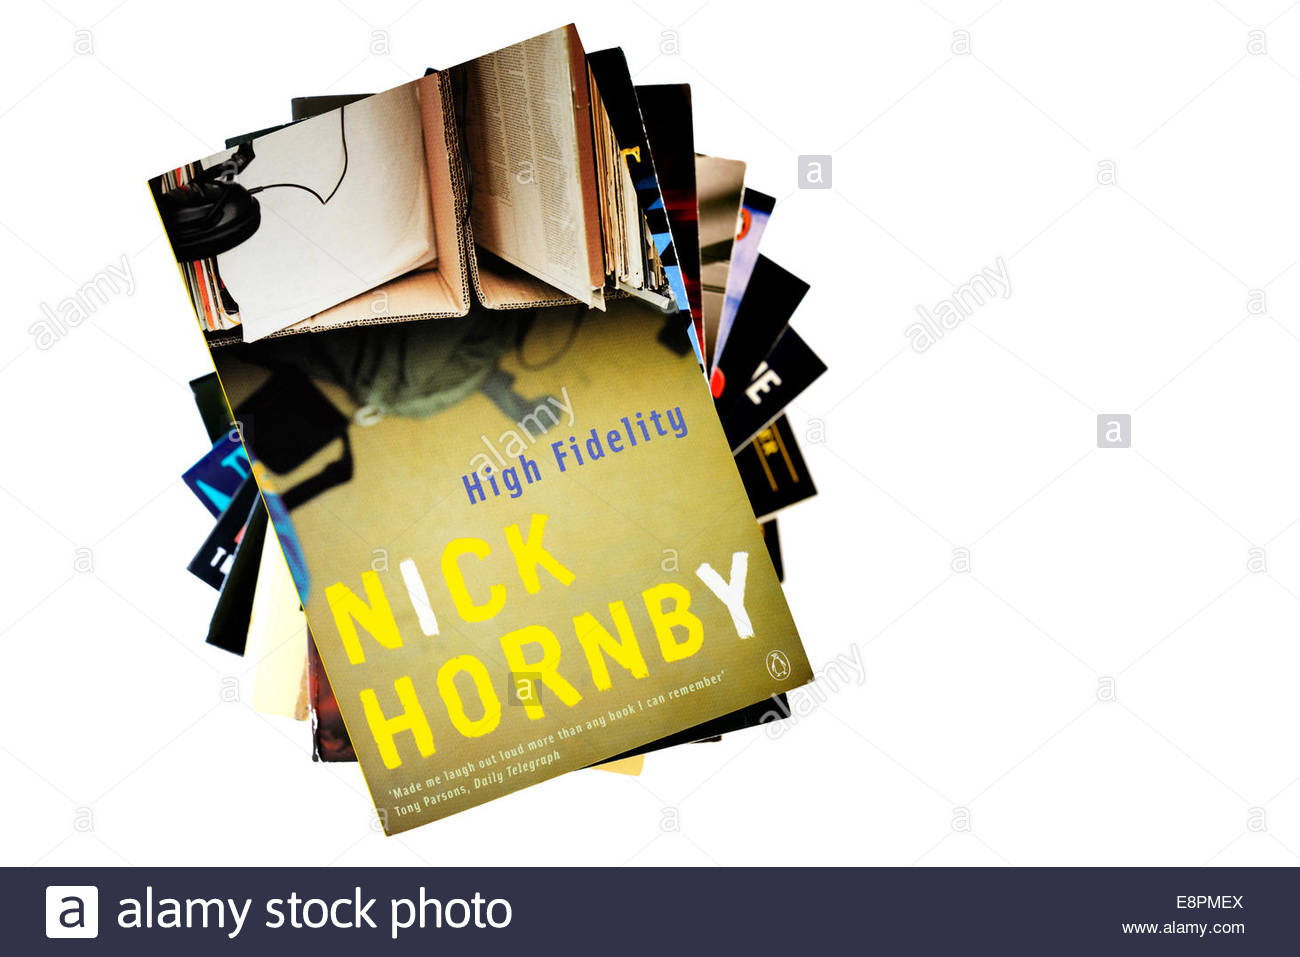 Nick Hornby debut novel High Fidelity, stacked used books, England - Stock Image